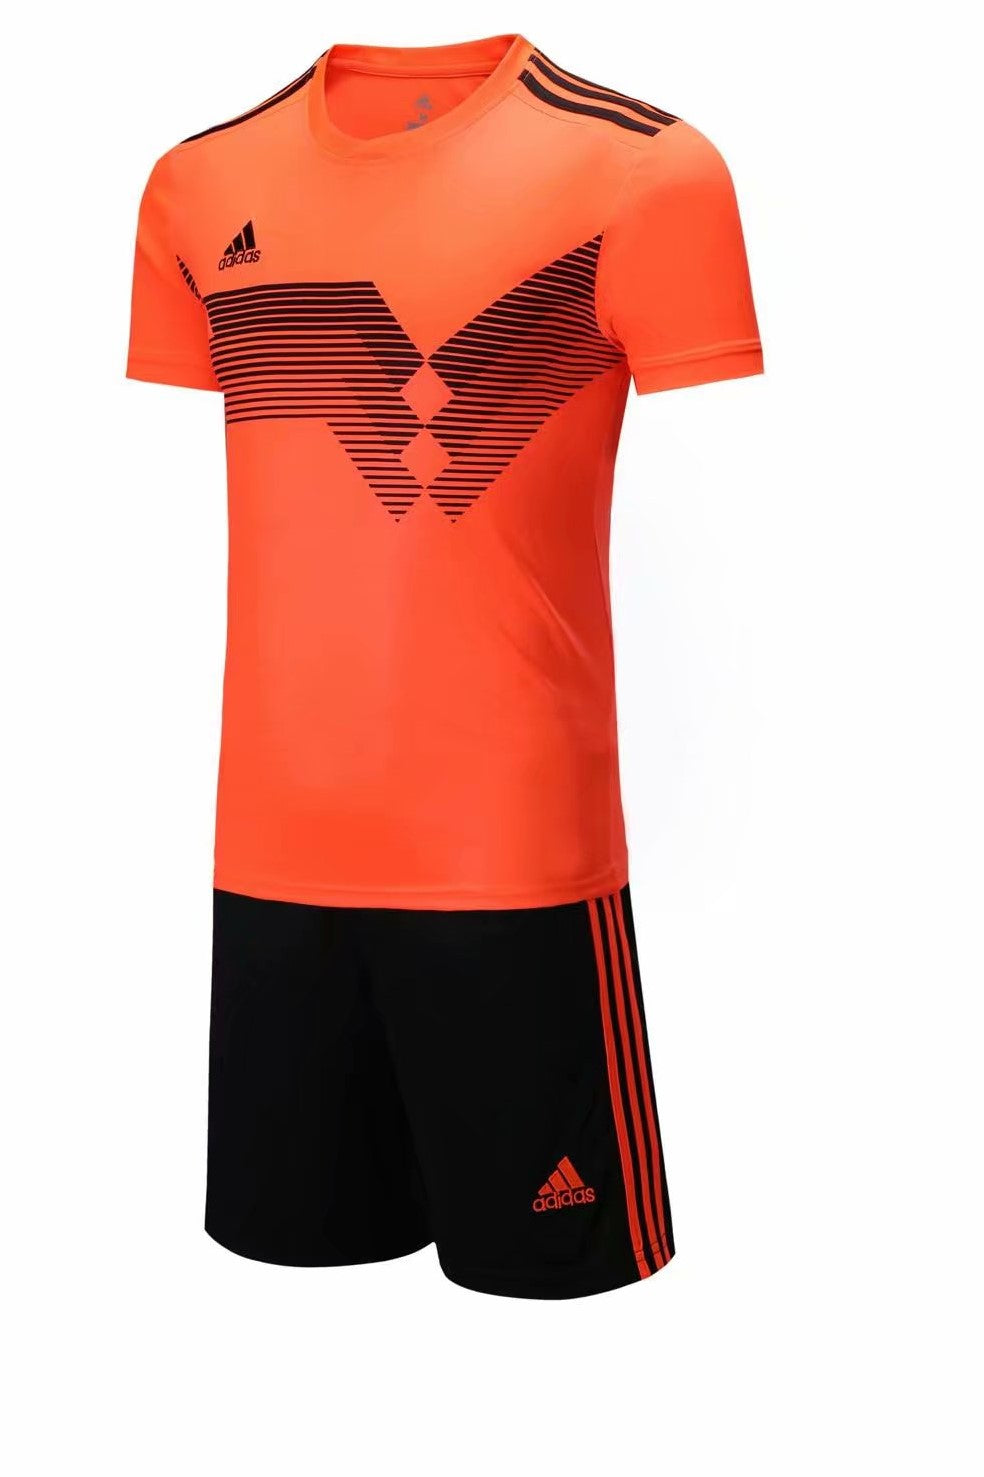 Adidas Full Football Kit Adult Sizes only - Orange with Black Stripe